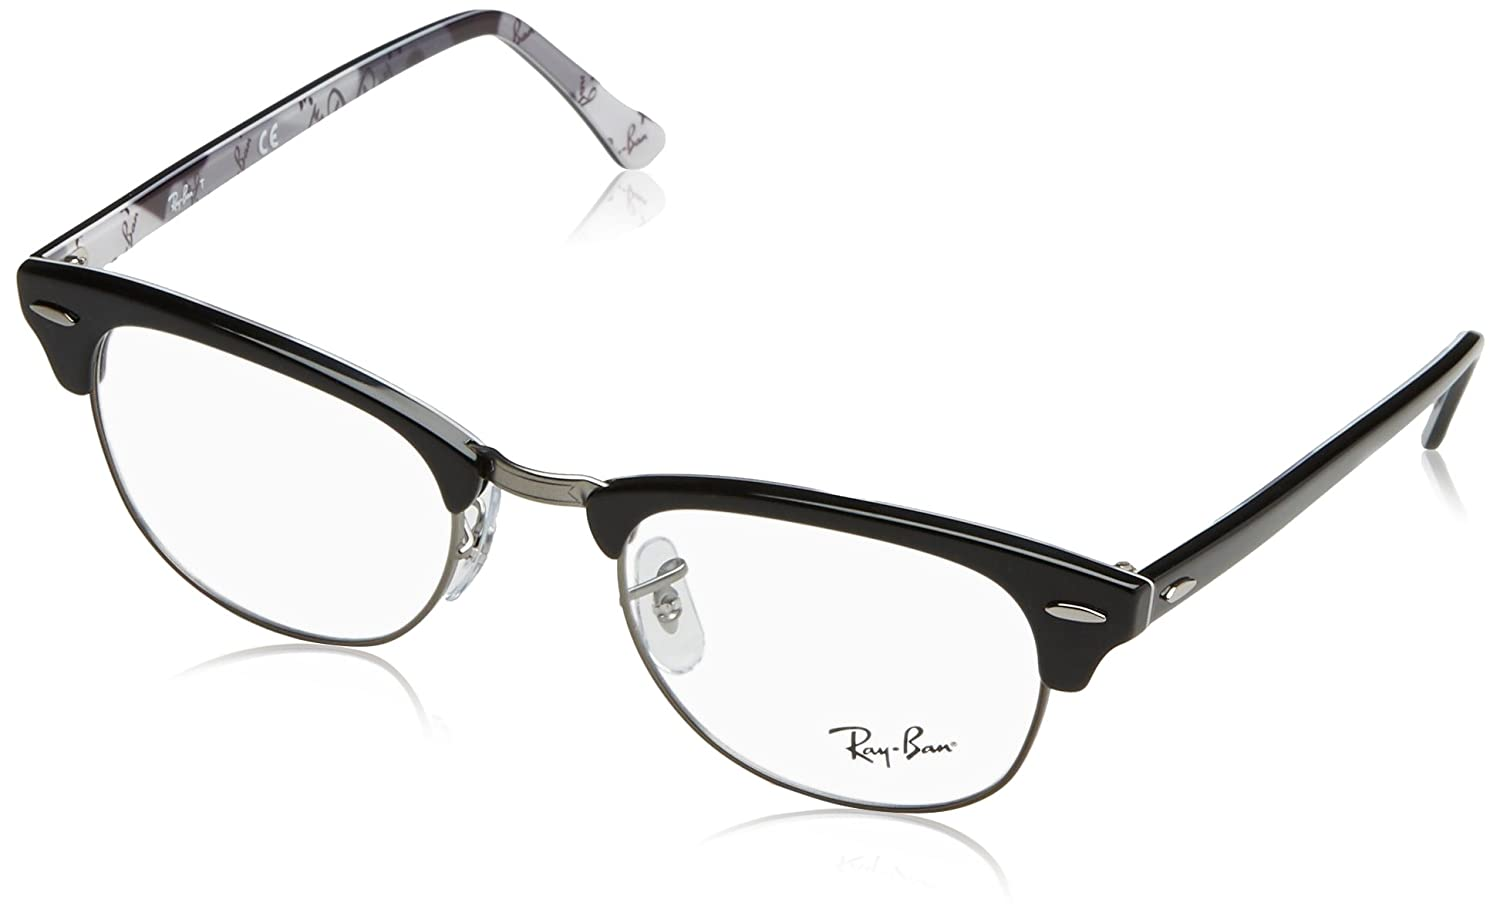 9e438a4327f Amazon.com  Ray-Ban Clubmaster No Polarization Square Prescription Eyewear  Frame